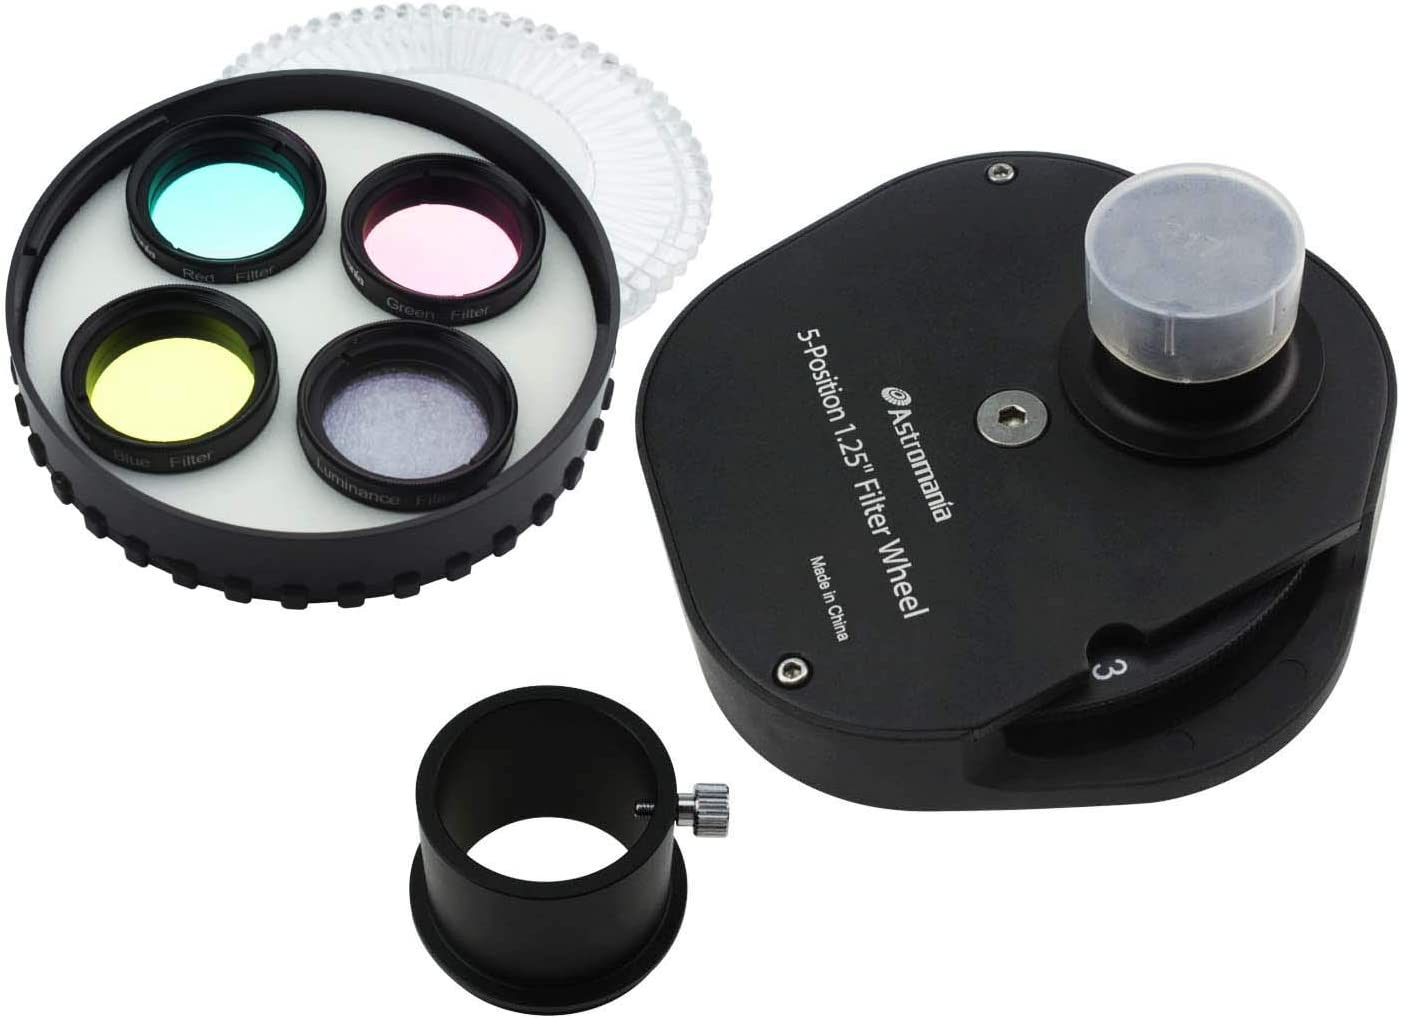 Allowing You to Image Without Any Reflections or Stray Light Astromania 2 Multiple 5-Position Filter Wheel for Telescope